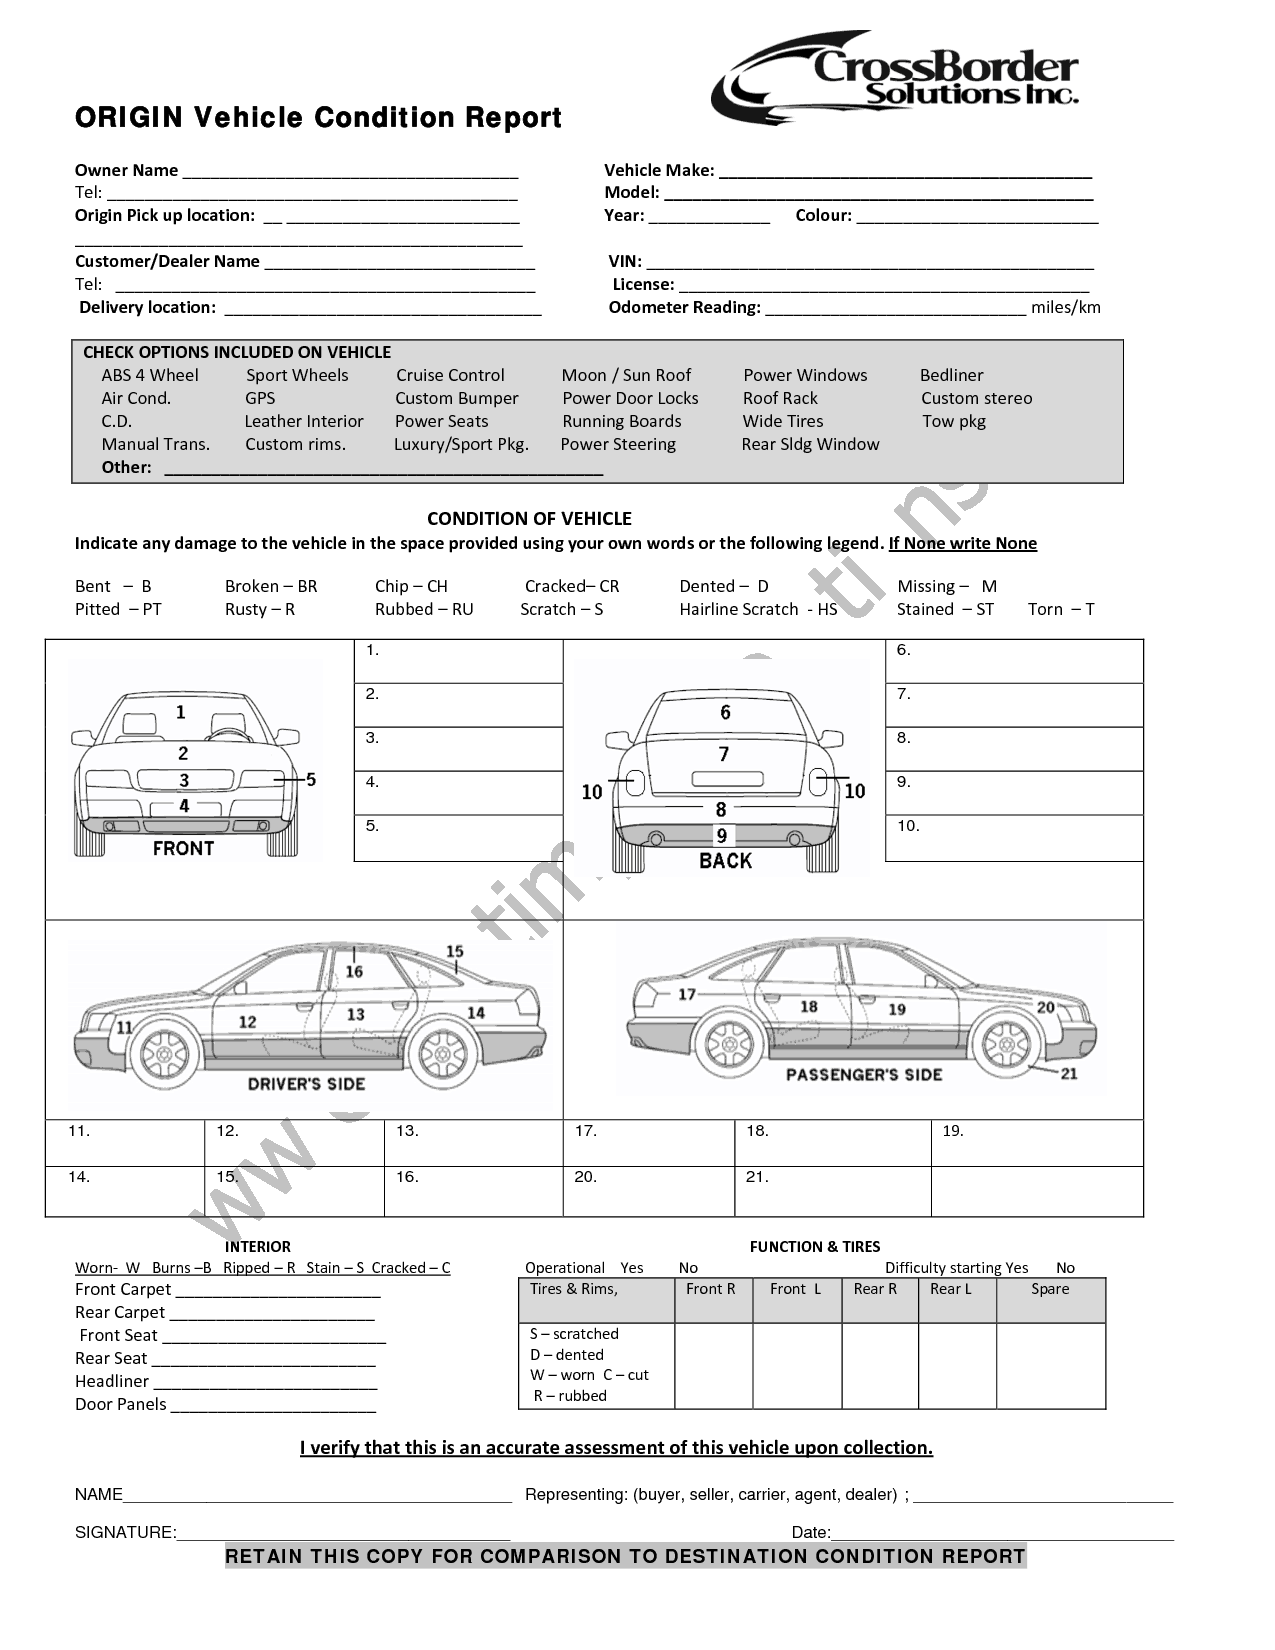 5 Vehicle Condition Reports